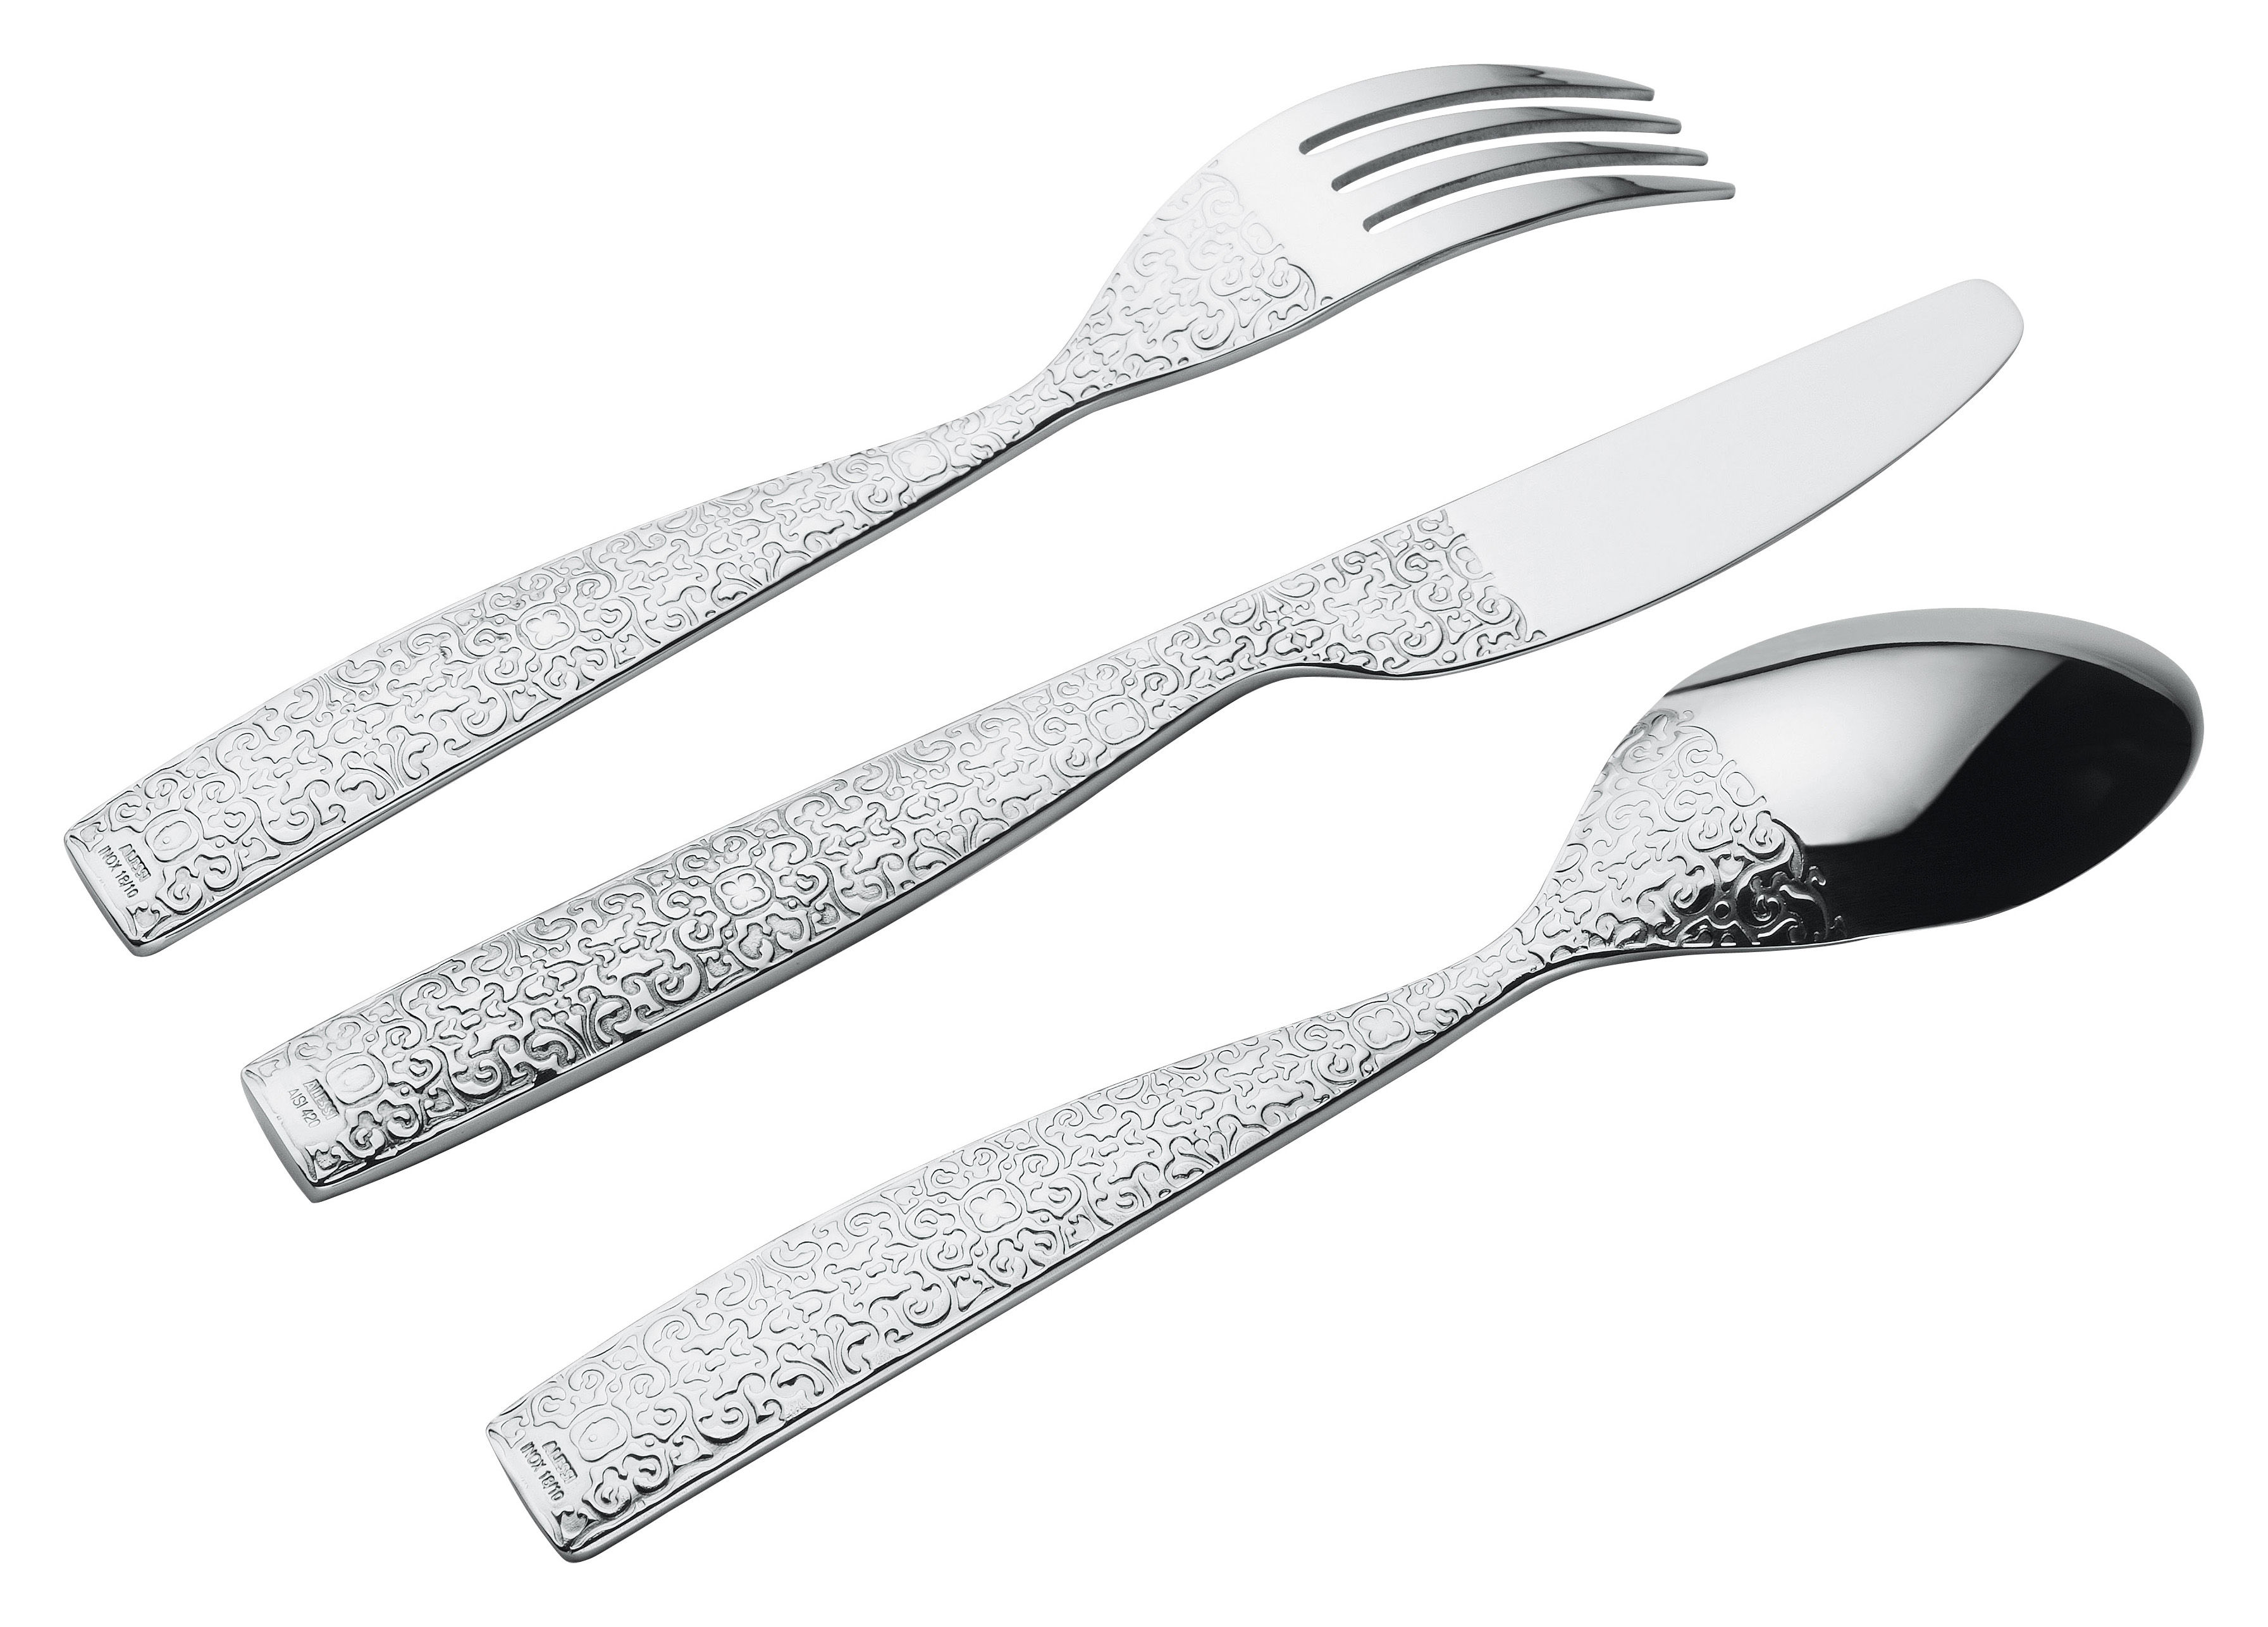 Tableware - Cutlery - Dressed Kitchen cupboard - 24 pieces by Alessi - Mirror - 24 pieces - Stainless steel